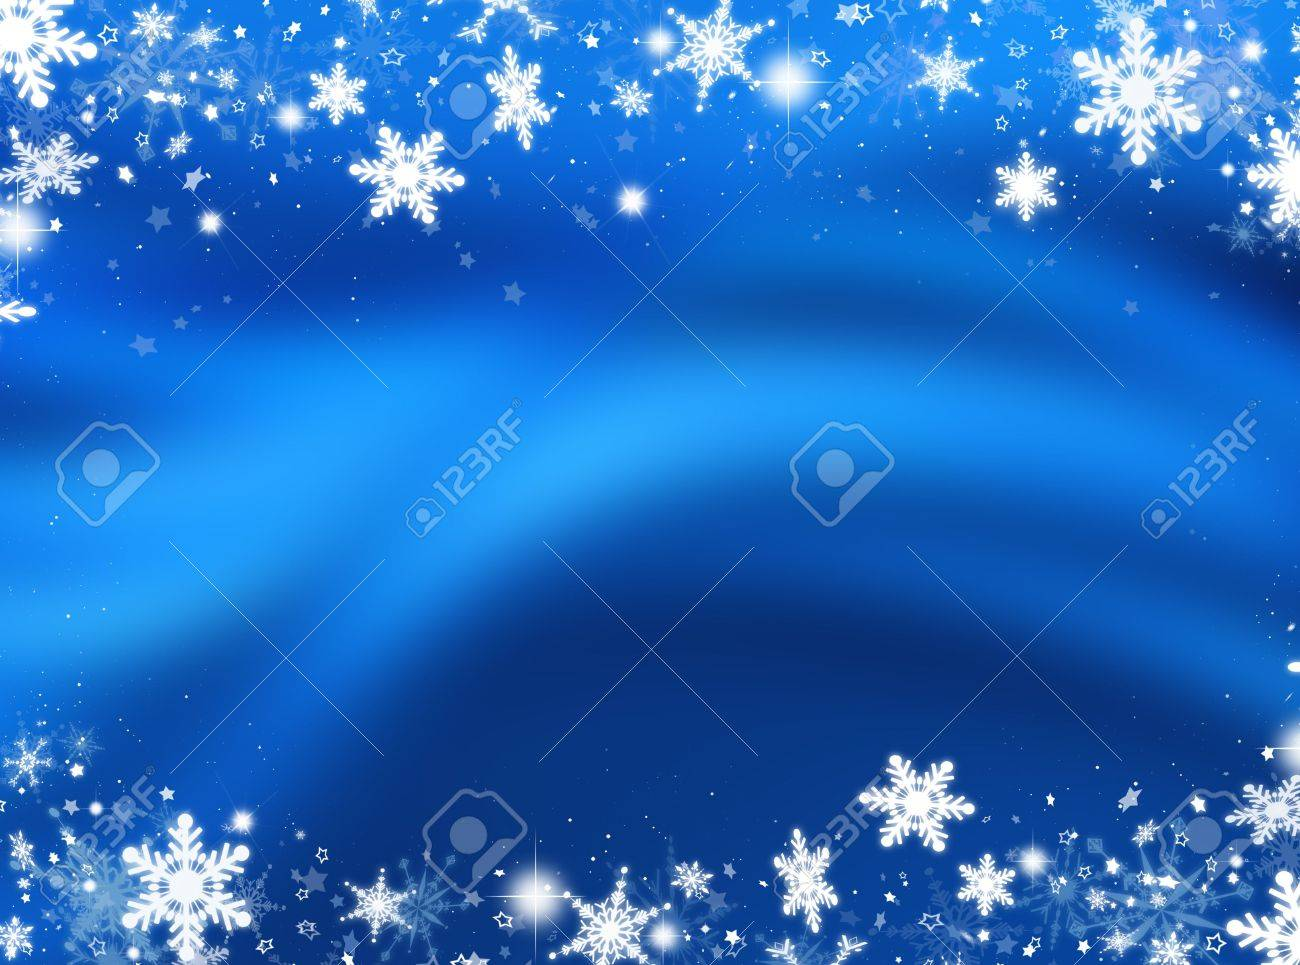 Abstract background of snowflakes and stars - 5842381